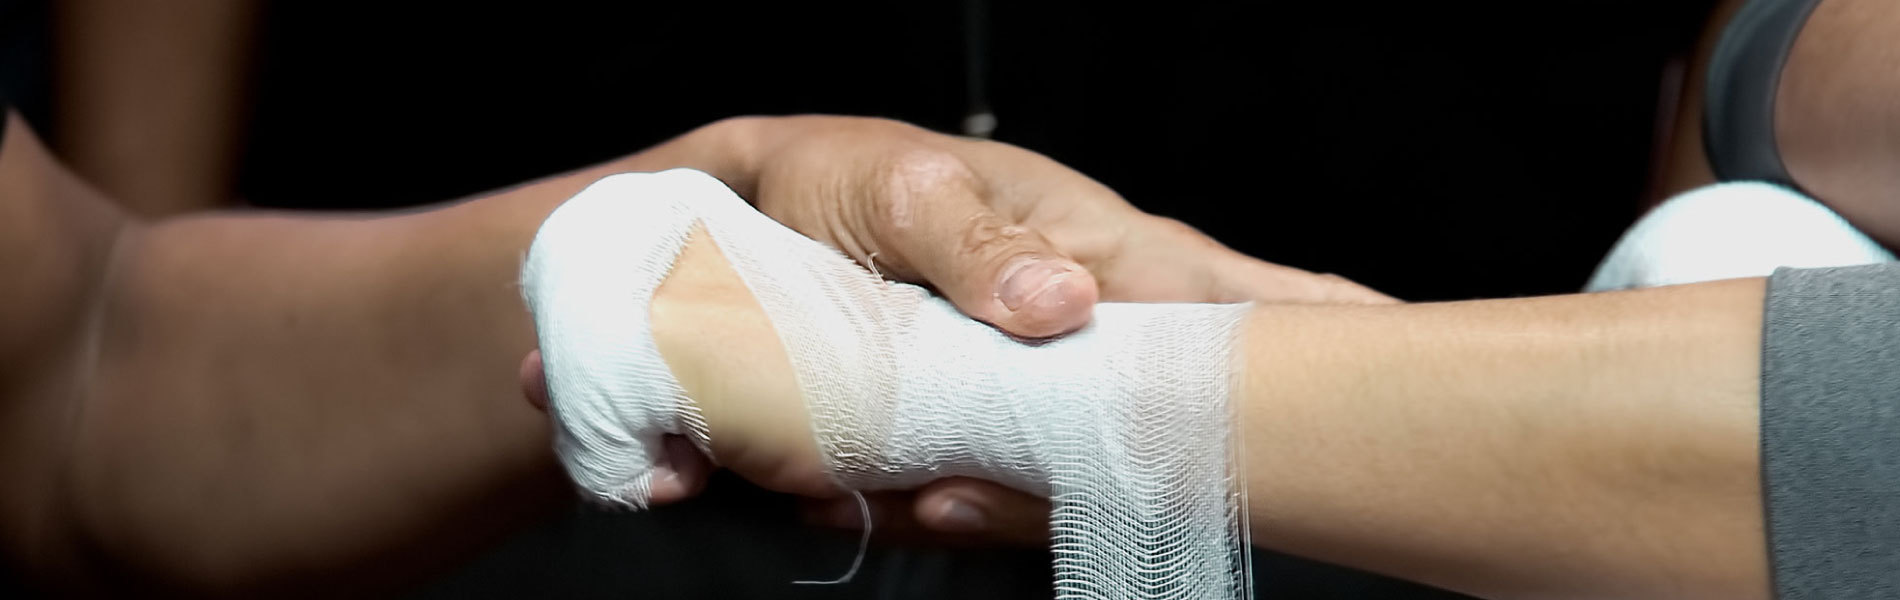 5 of the most common martial arts injuries and how to prevent them